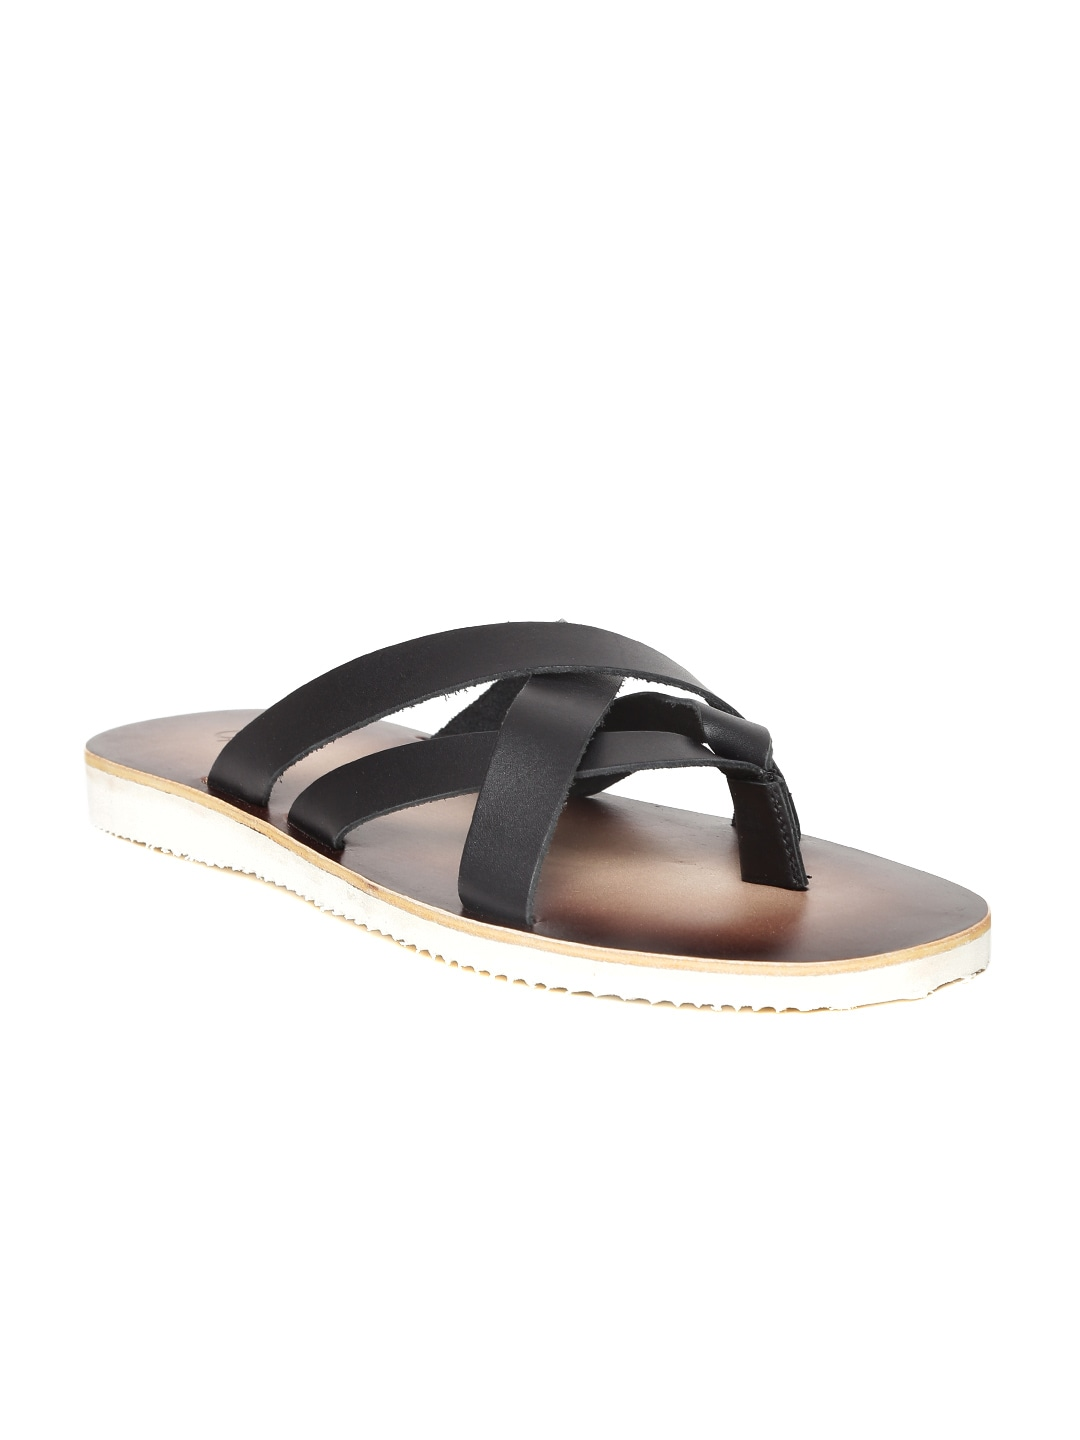 b4939214f38441 United Colors Of Benetton Sandals - Buy United Colors Of Benetton Sandals  Online in India